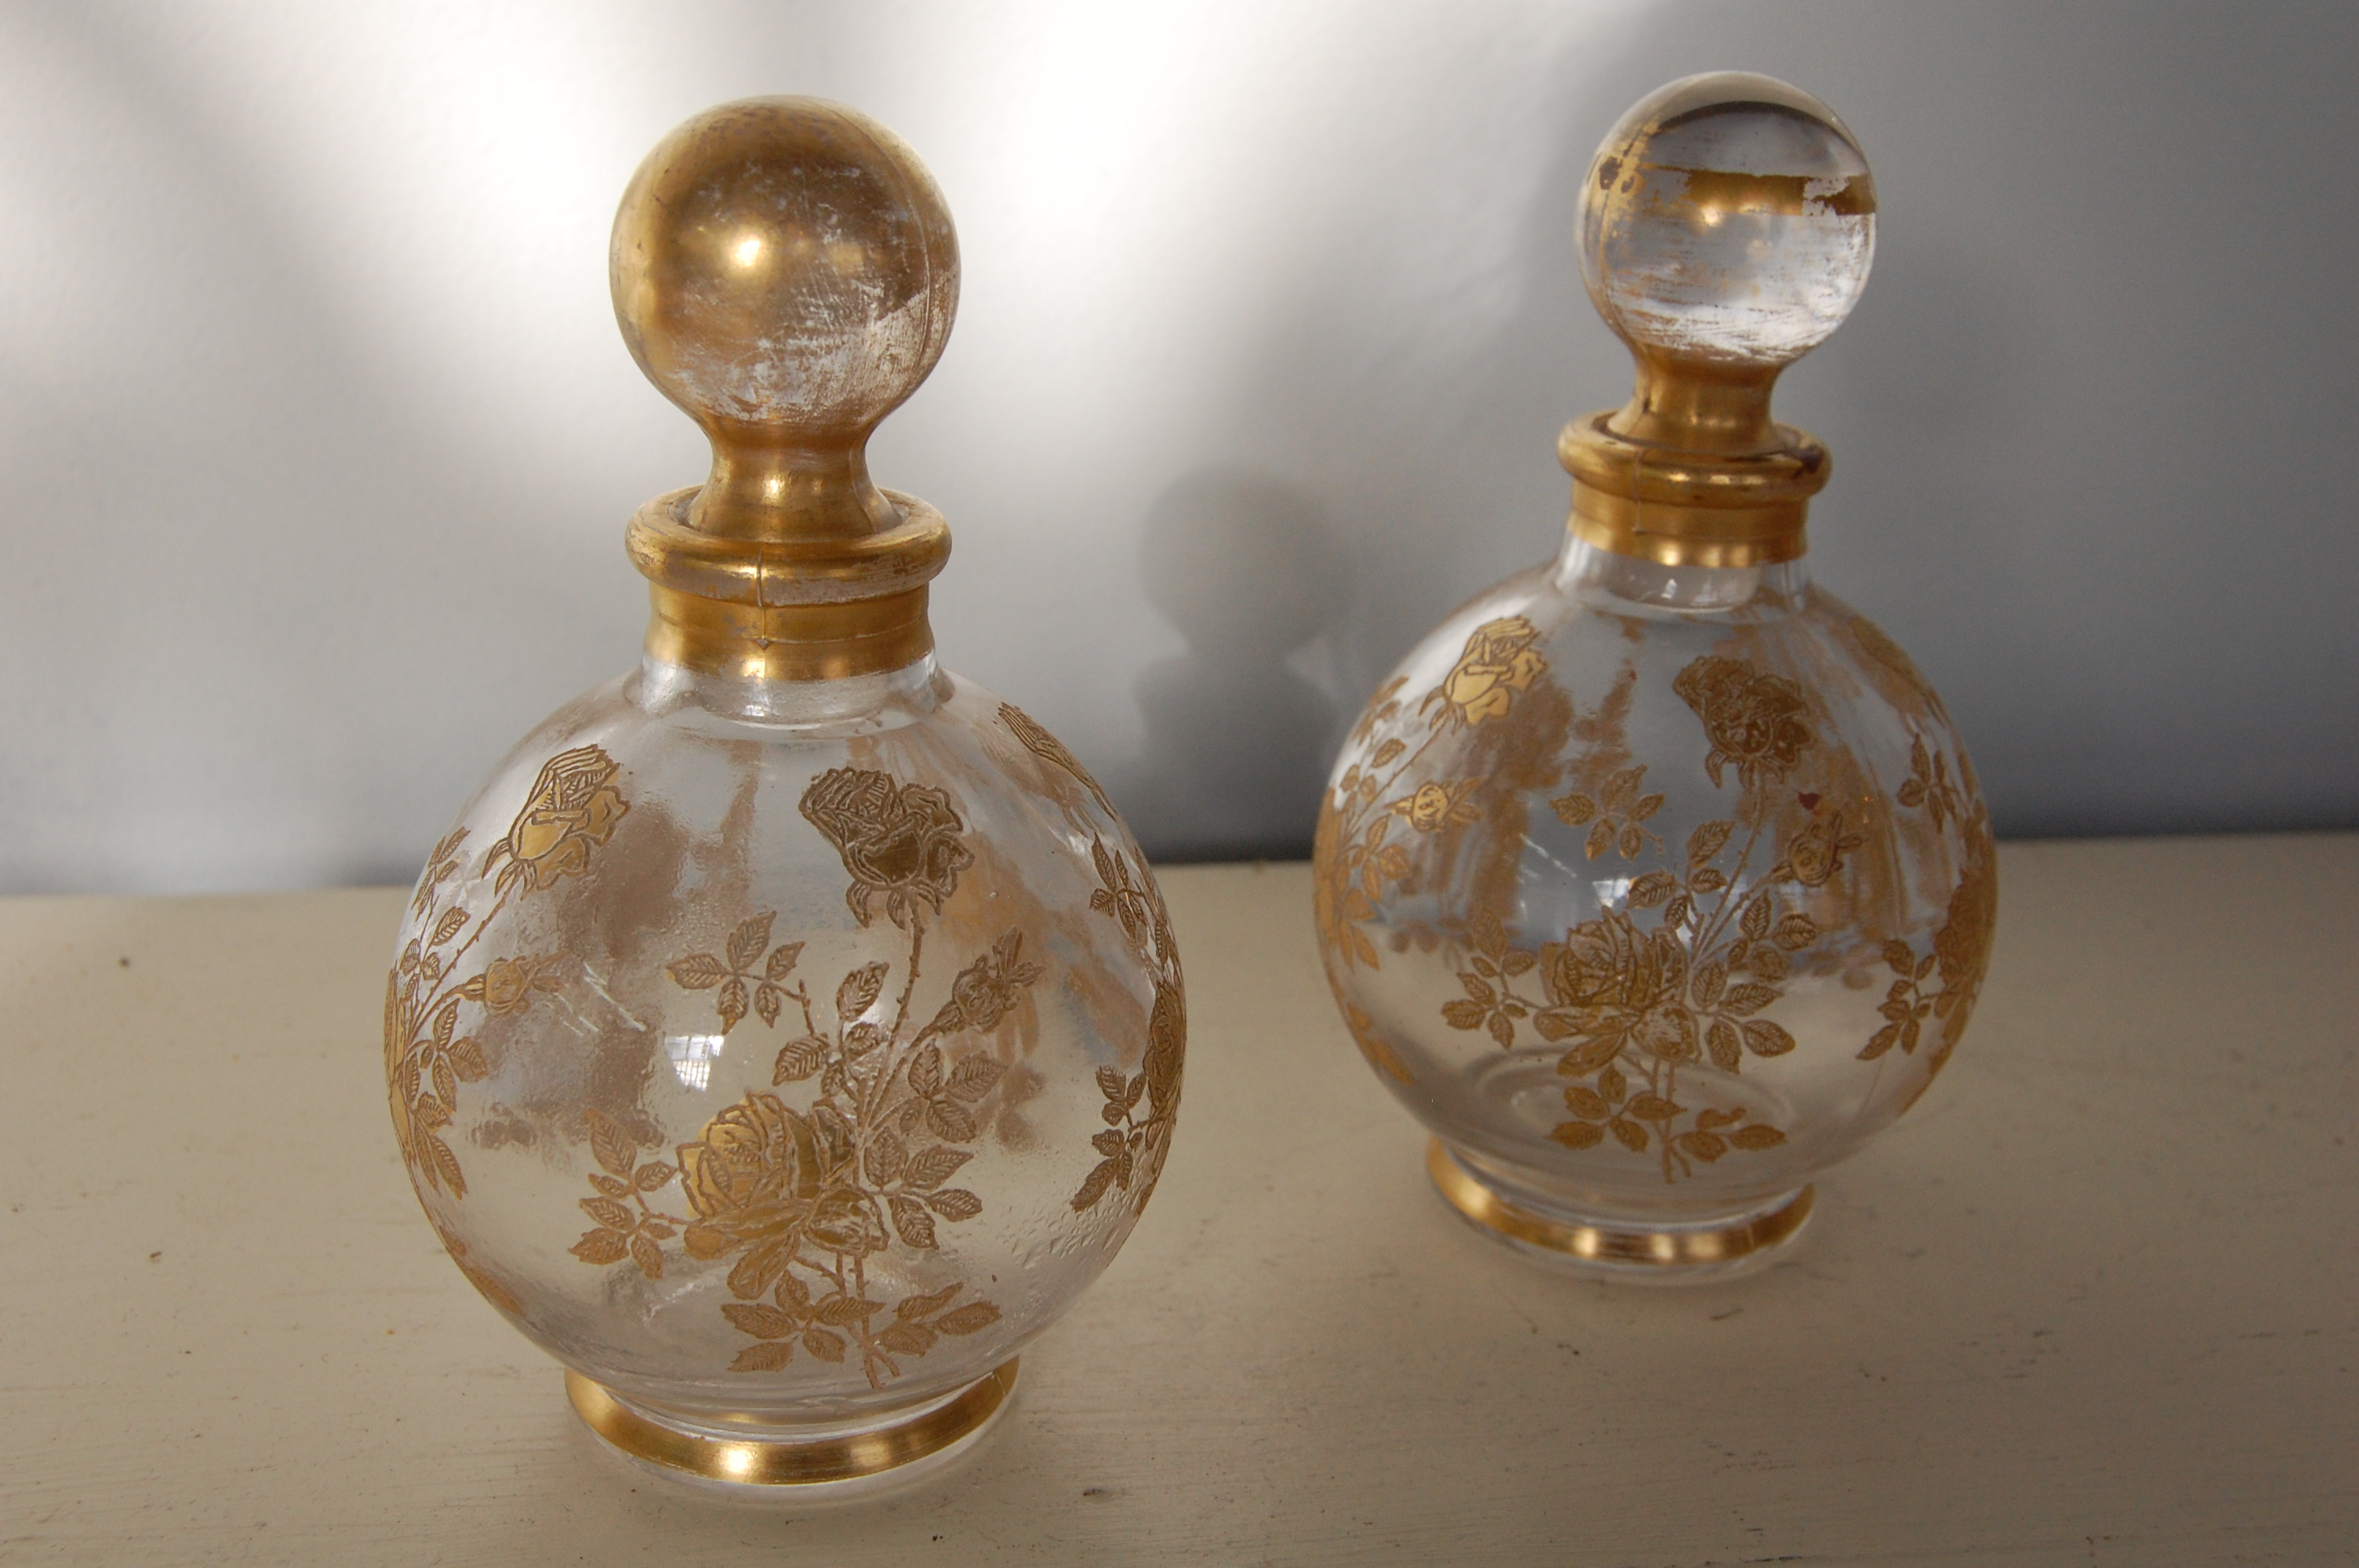 Pair Of Vintage Glass Amp Gold Perfume Bottles The Savoy Flea